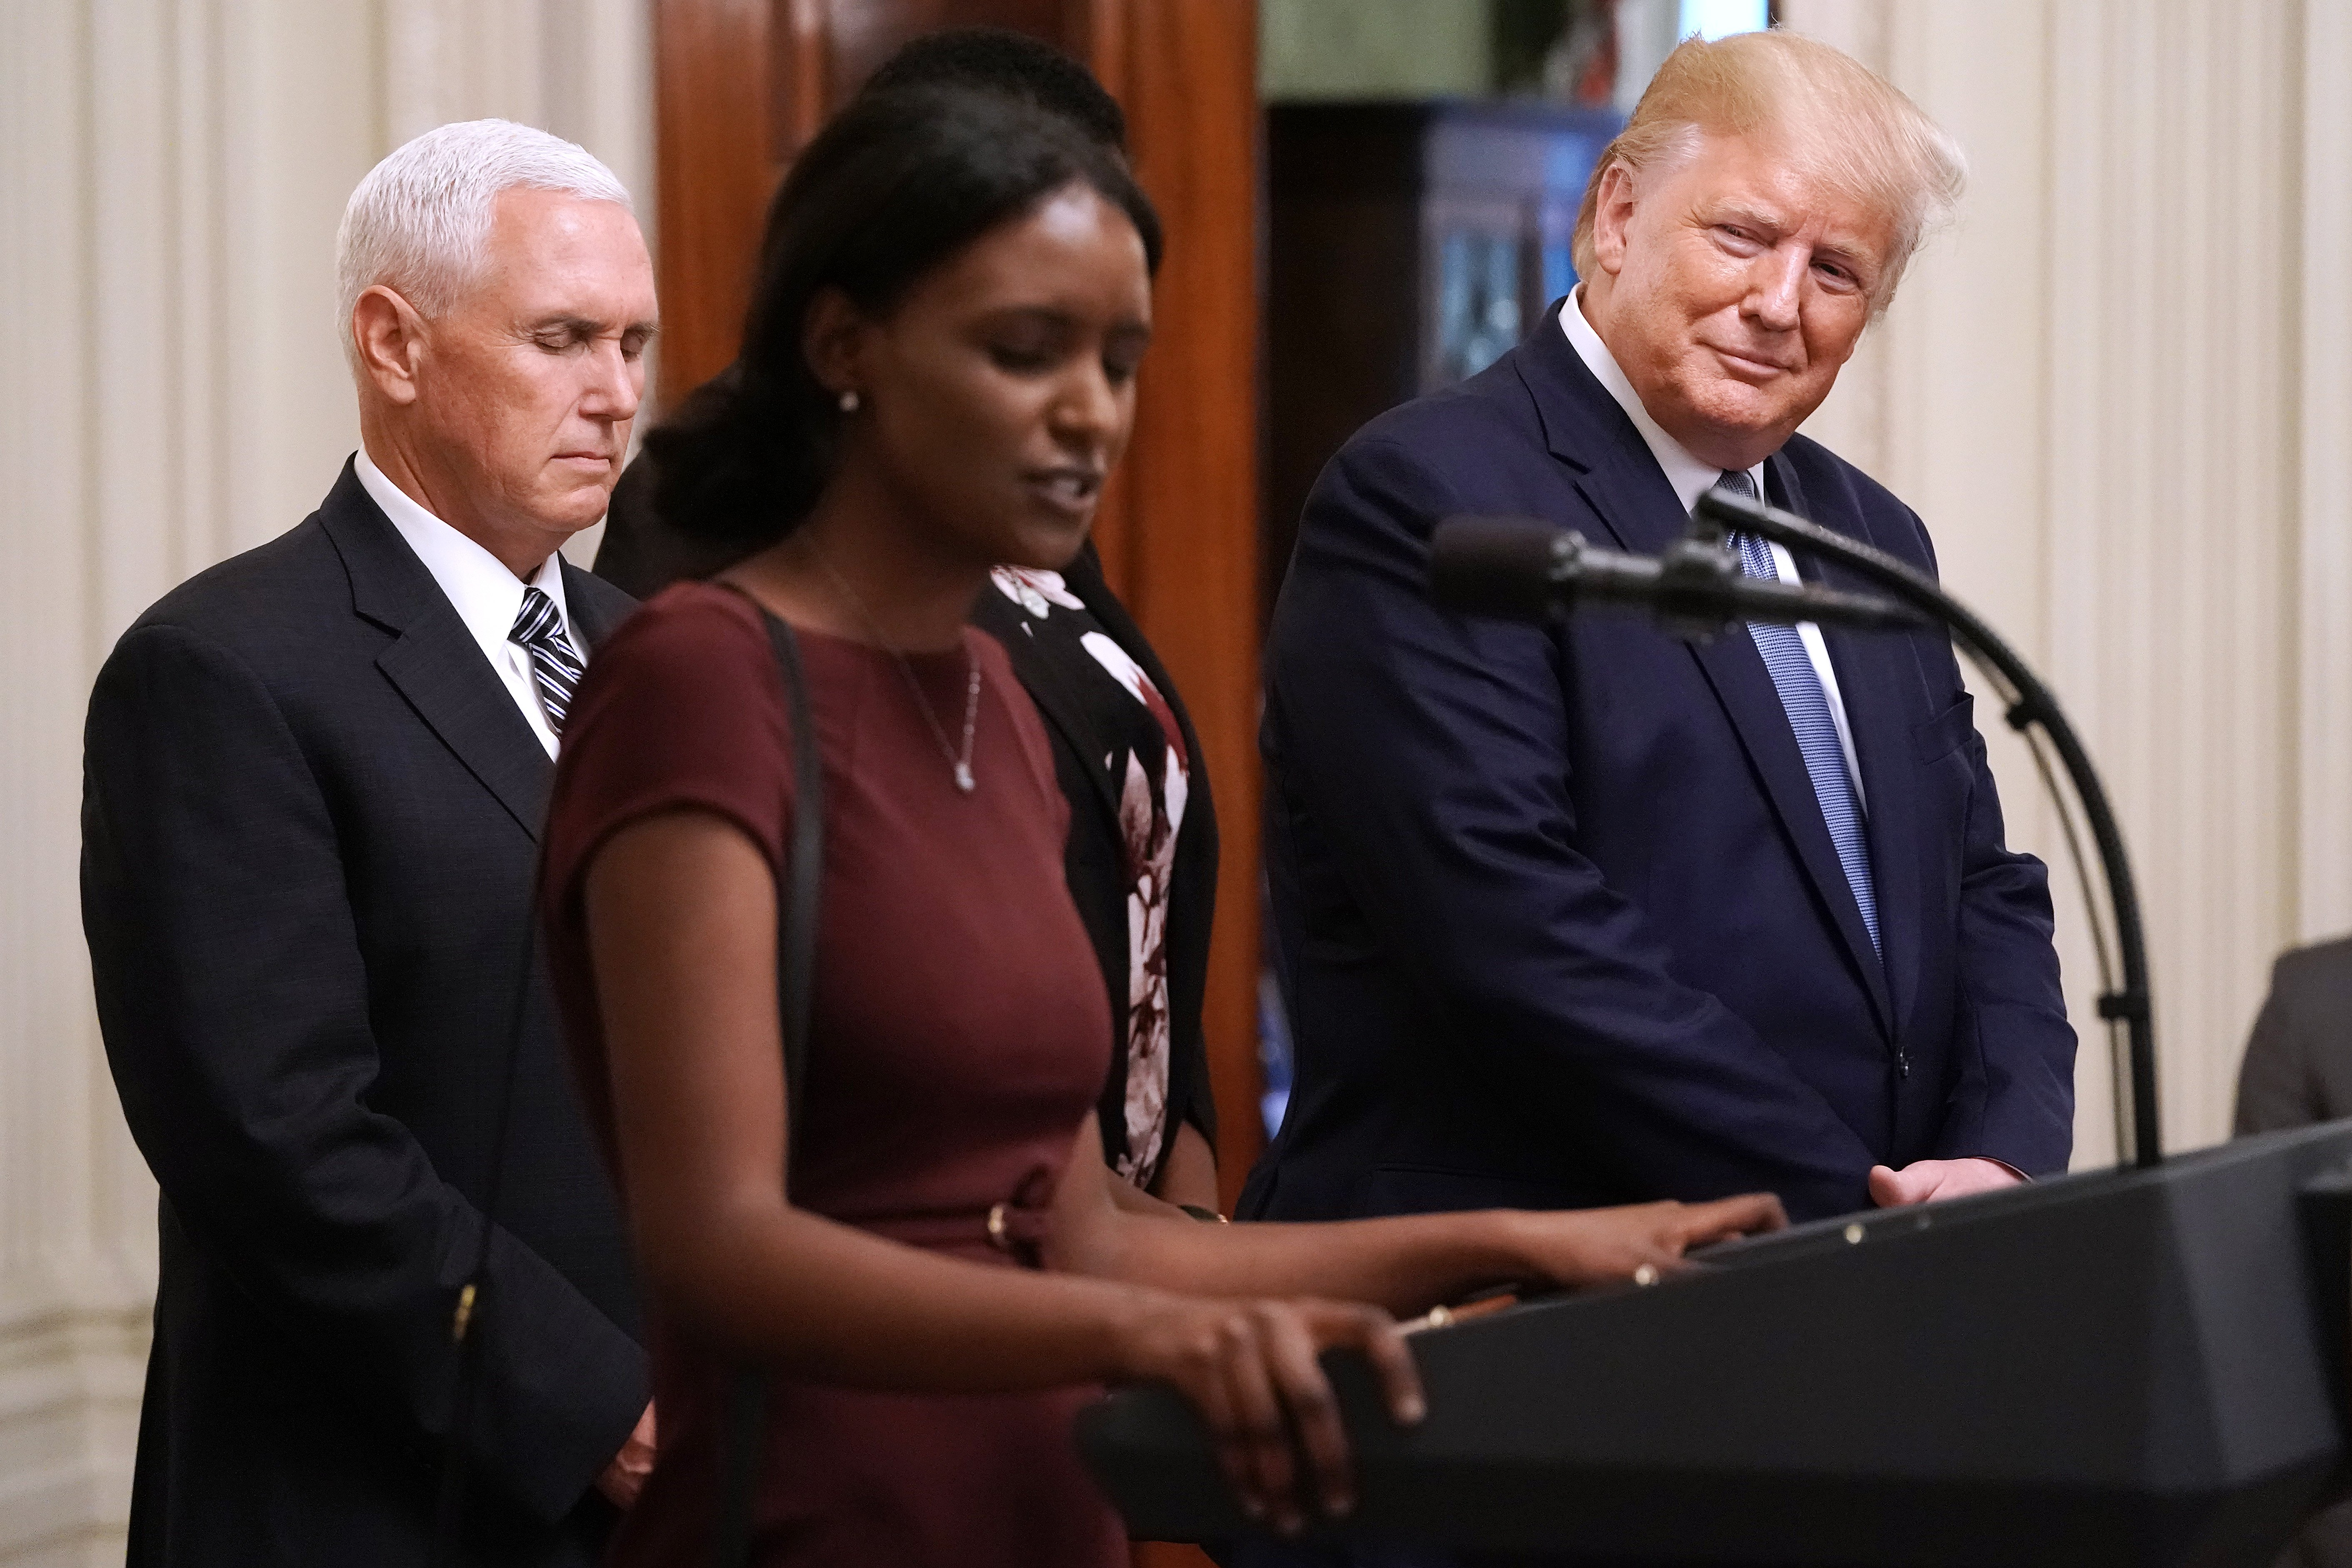 President Donald Trump (R) listens as a woman he invited on stage prays with Vice President Mike Pence during an event for the Young Black Leadership Summit in the East Room of the White House October 04, 2019 in Washington, DC. Organized by the conservative nonprofit political group Turning Points USA, the summit bills itself as a professional development, leadership training and networking opportunity. Chip Somodevilla/Getty Images